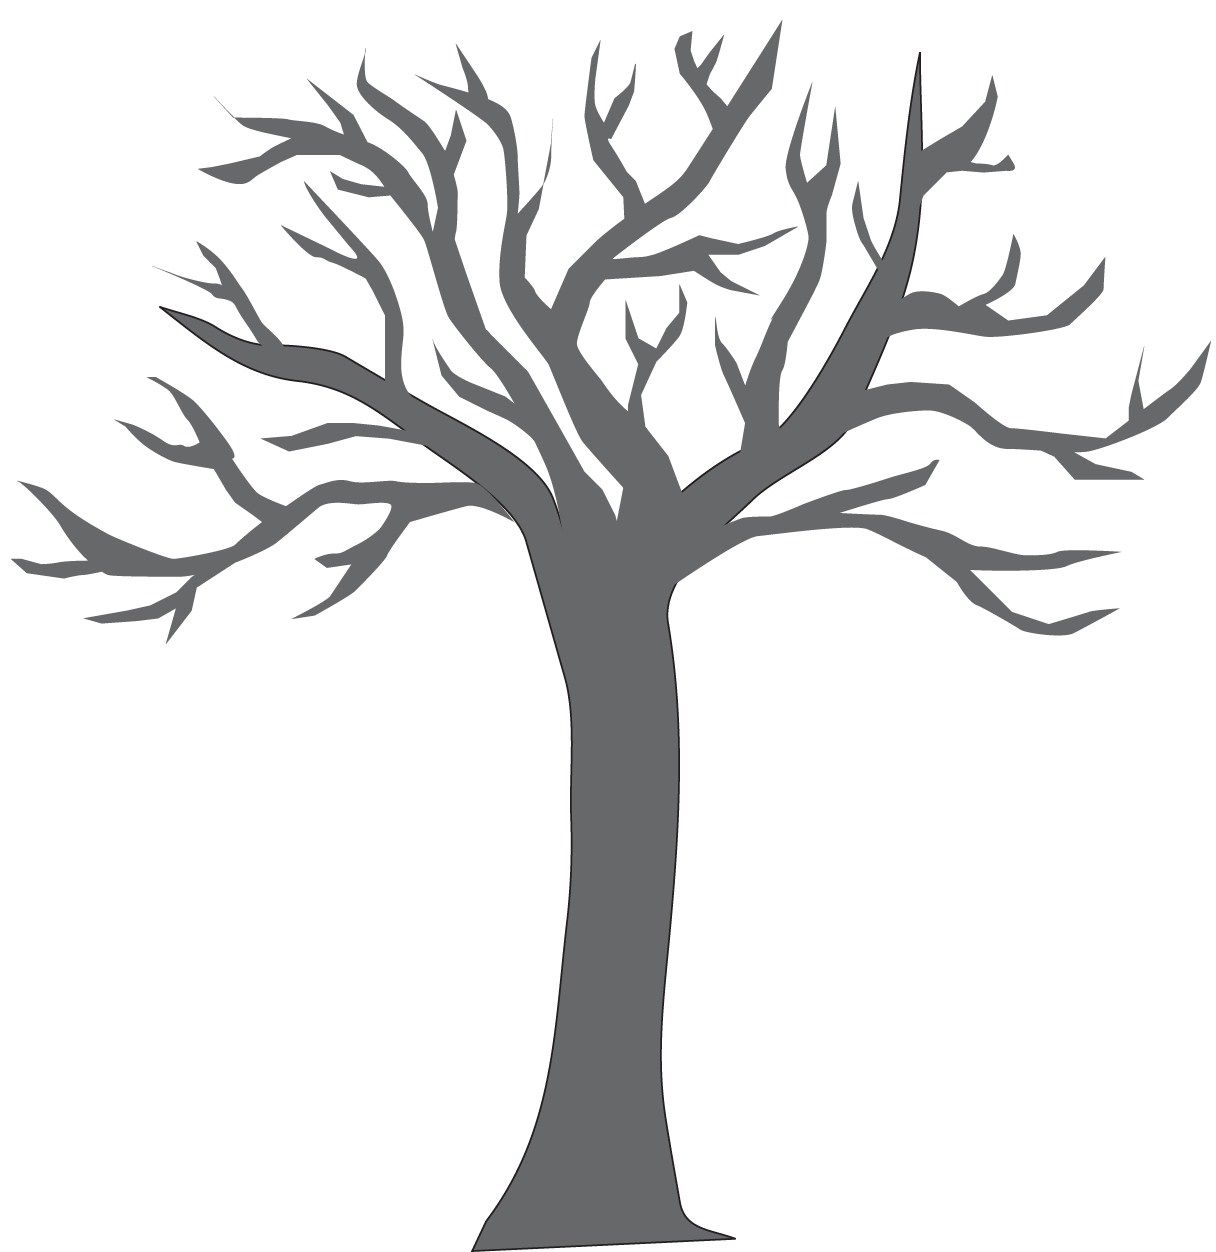 printable colouring pages - Bare Tree Coloring Pages Printable